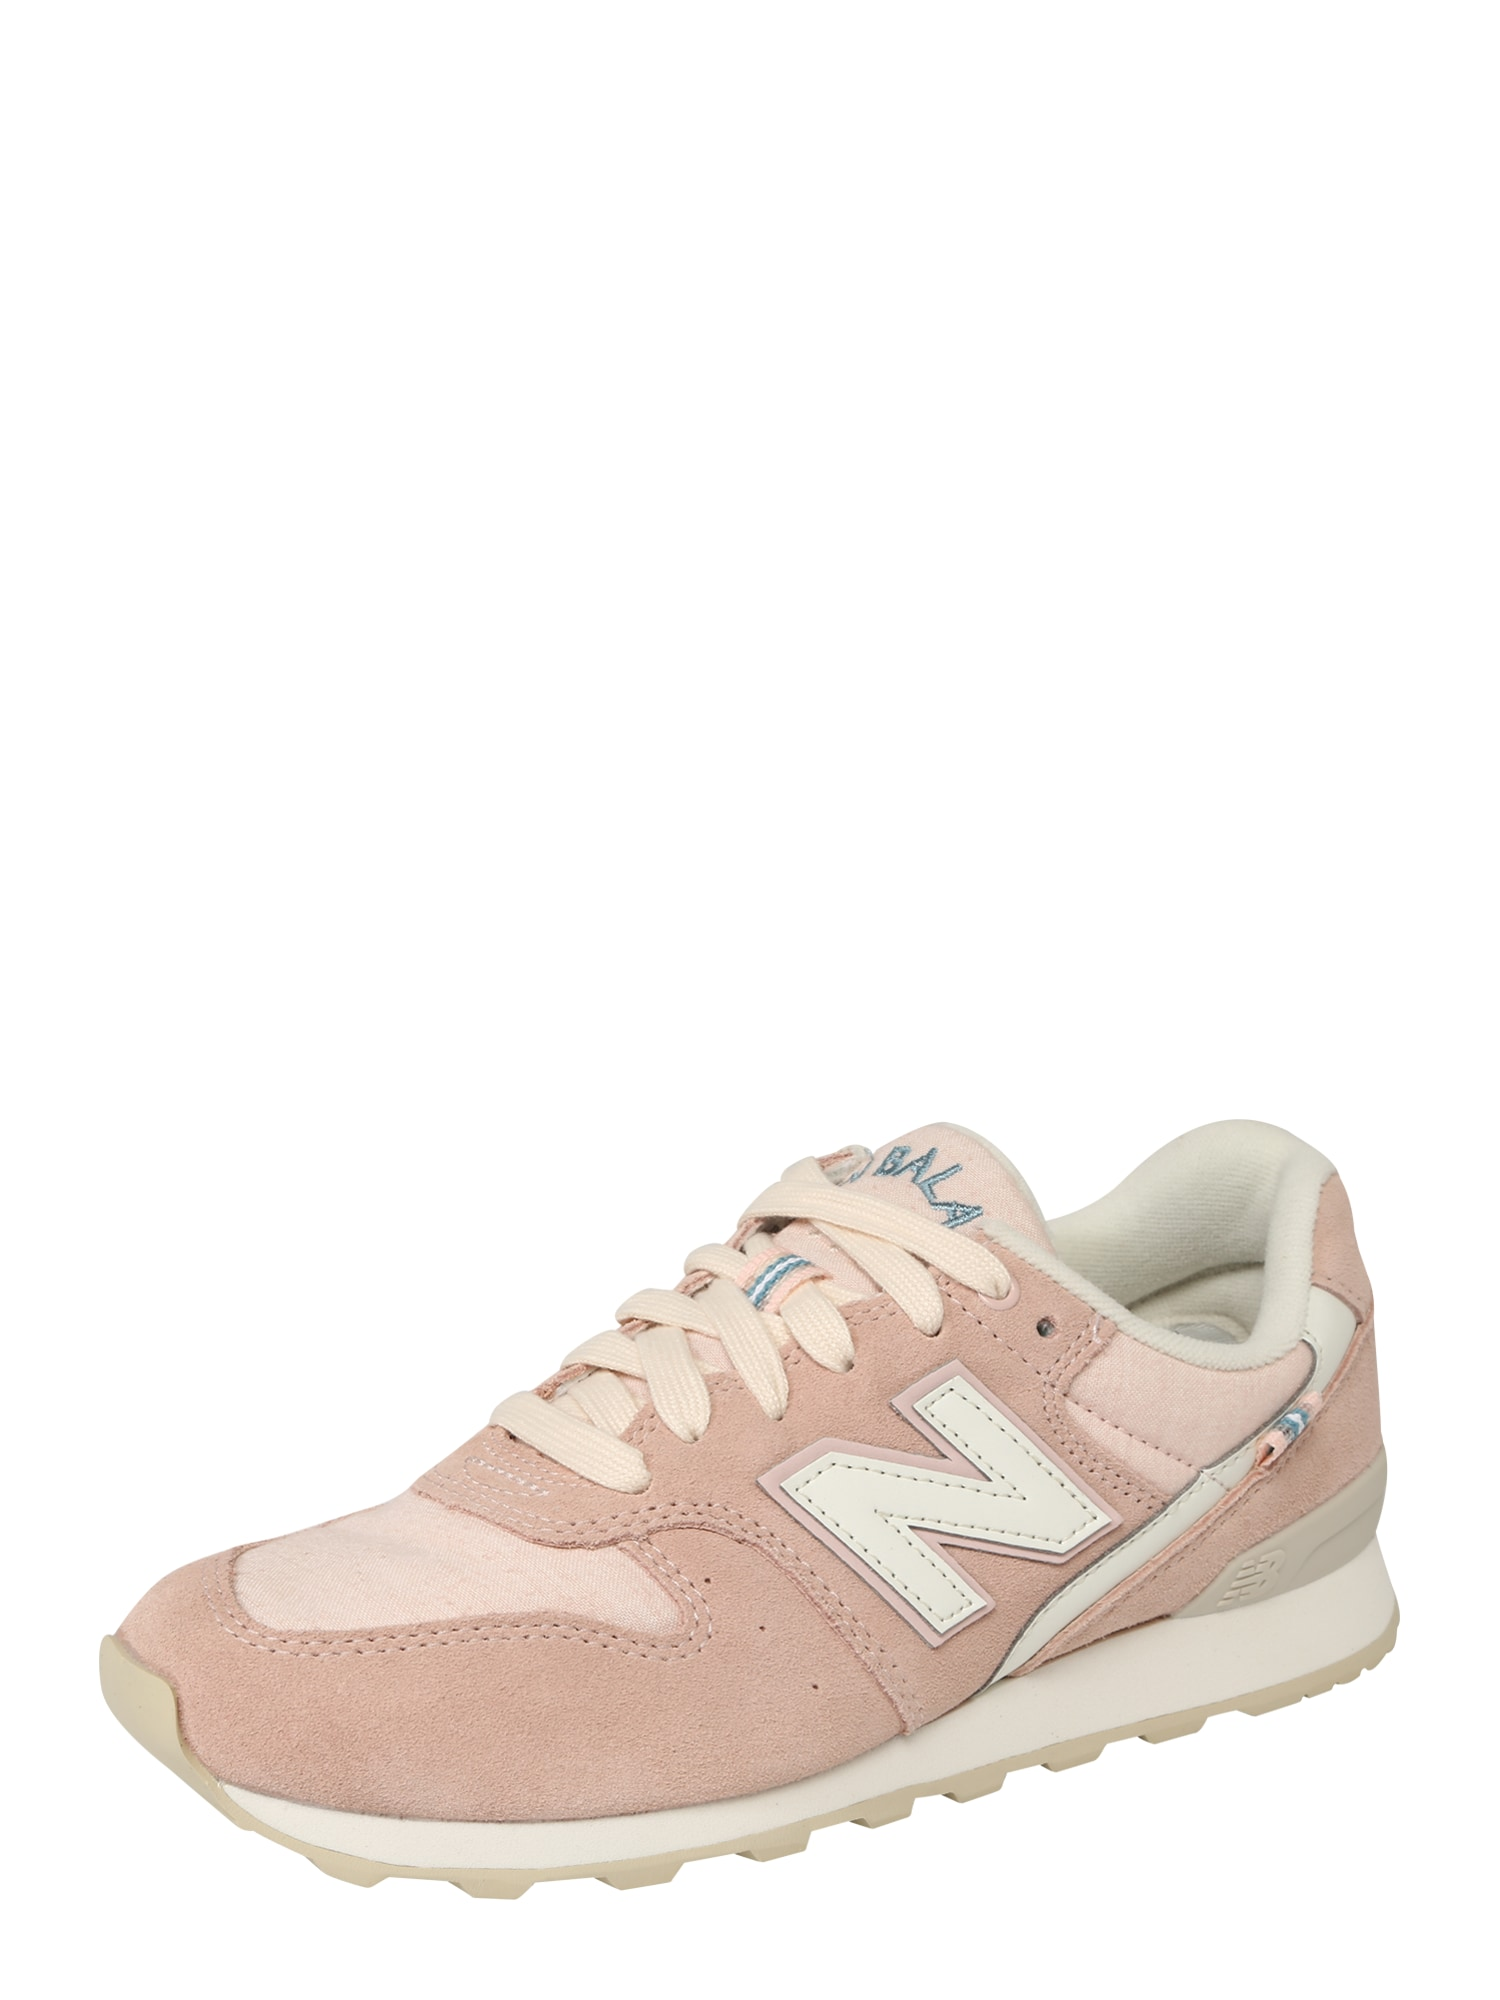 New Balance, Dames Sneakers laag '996', blauw / rosa / wit